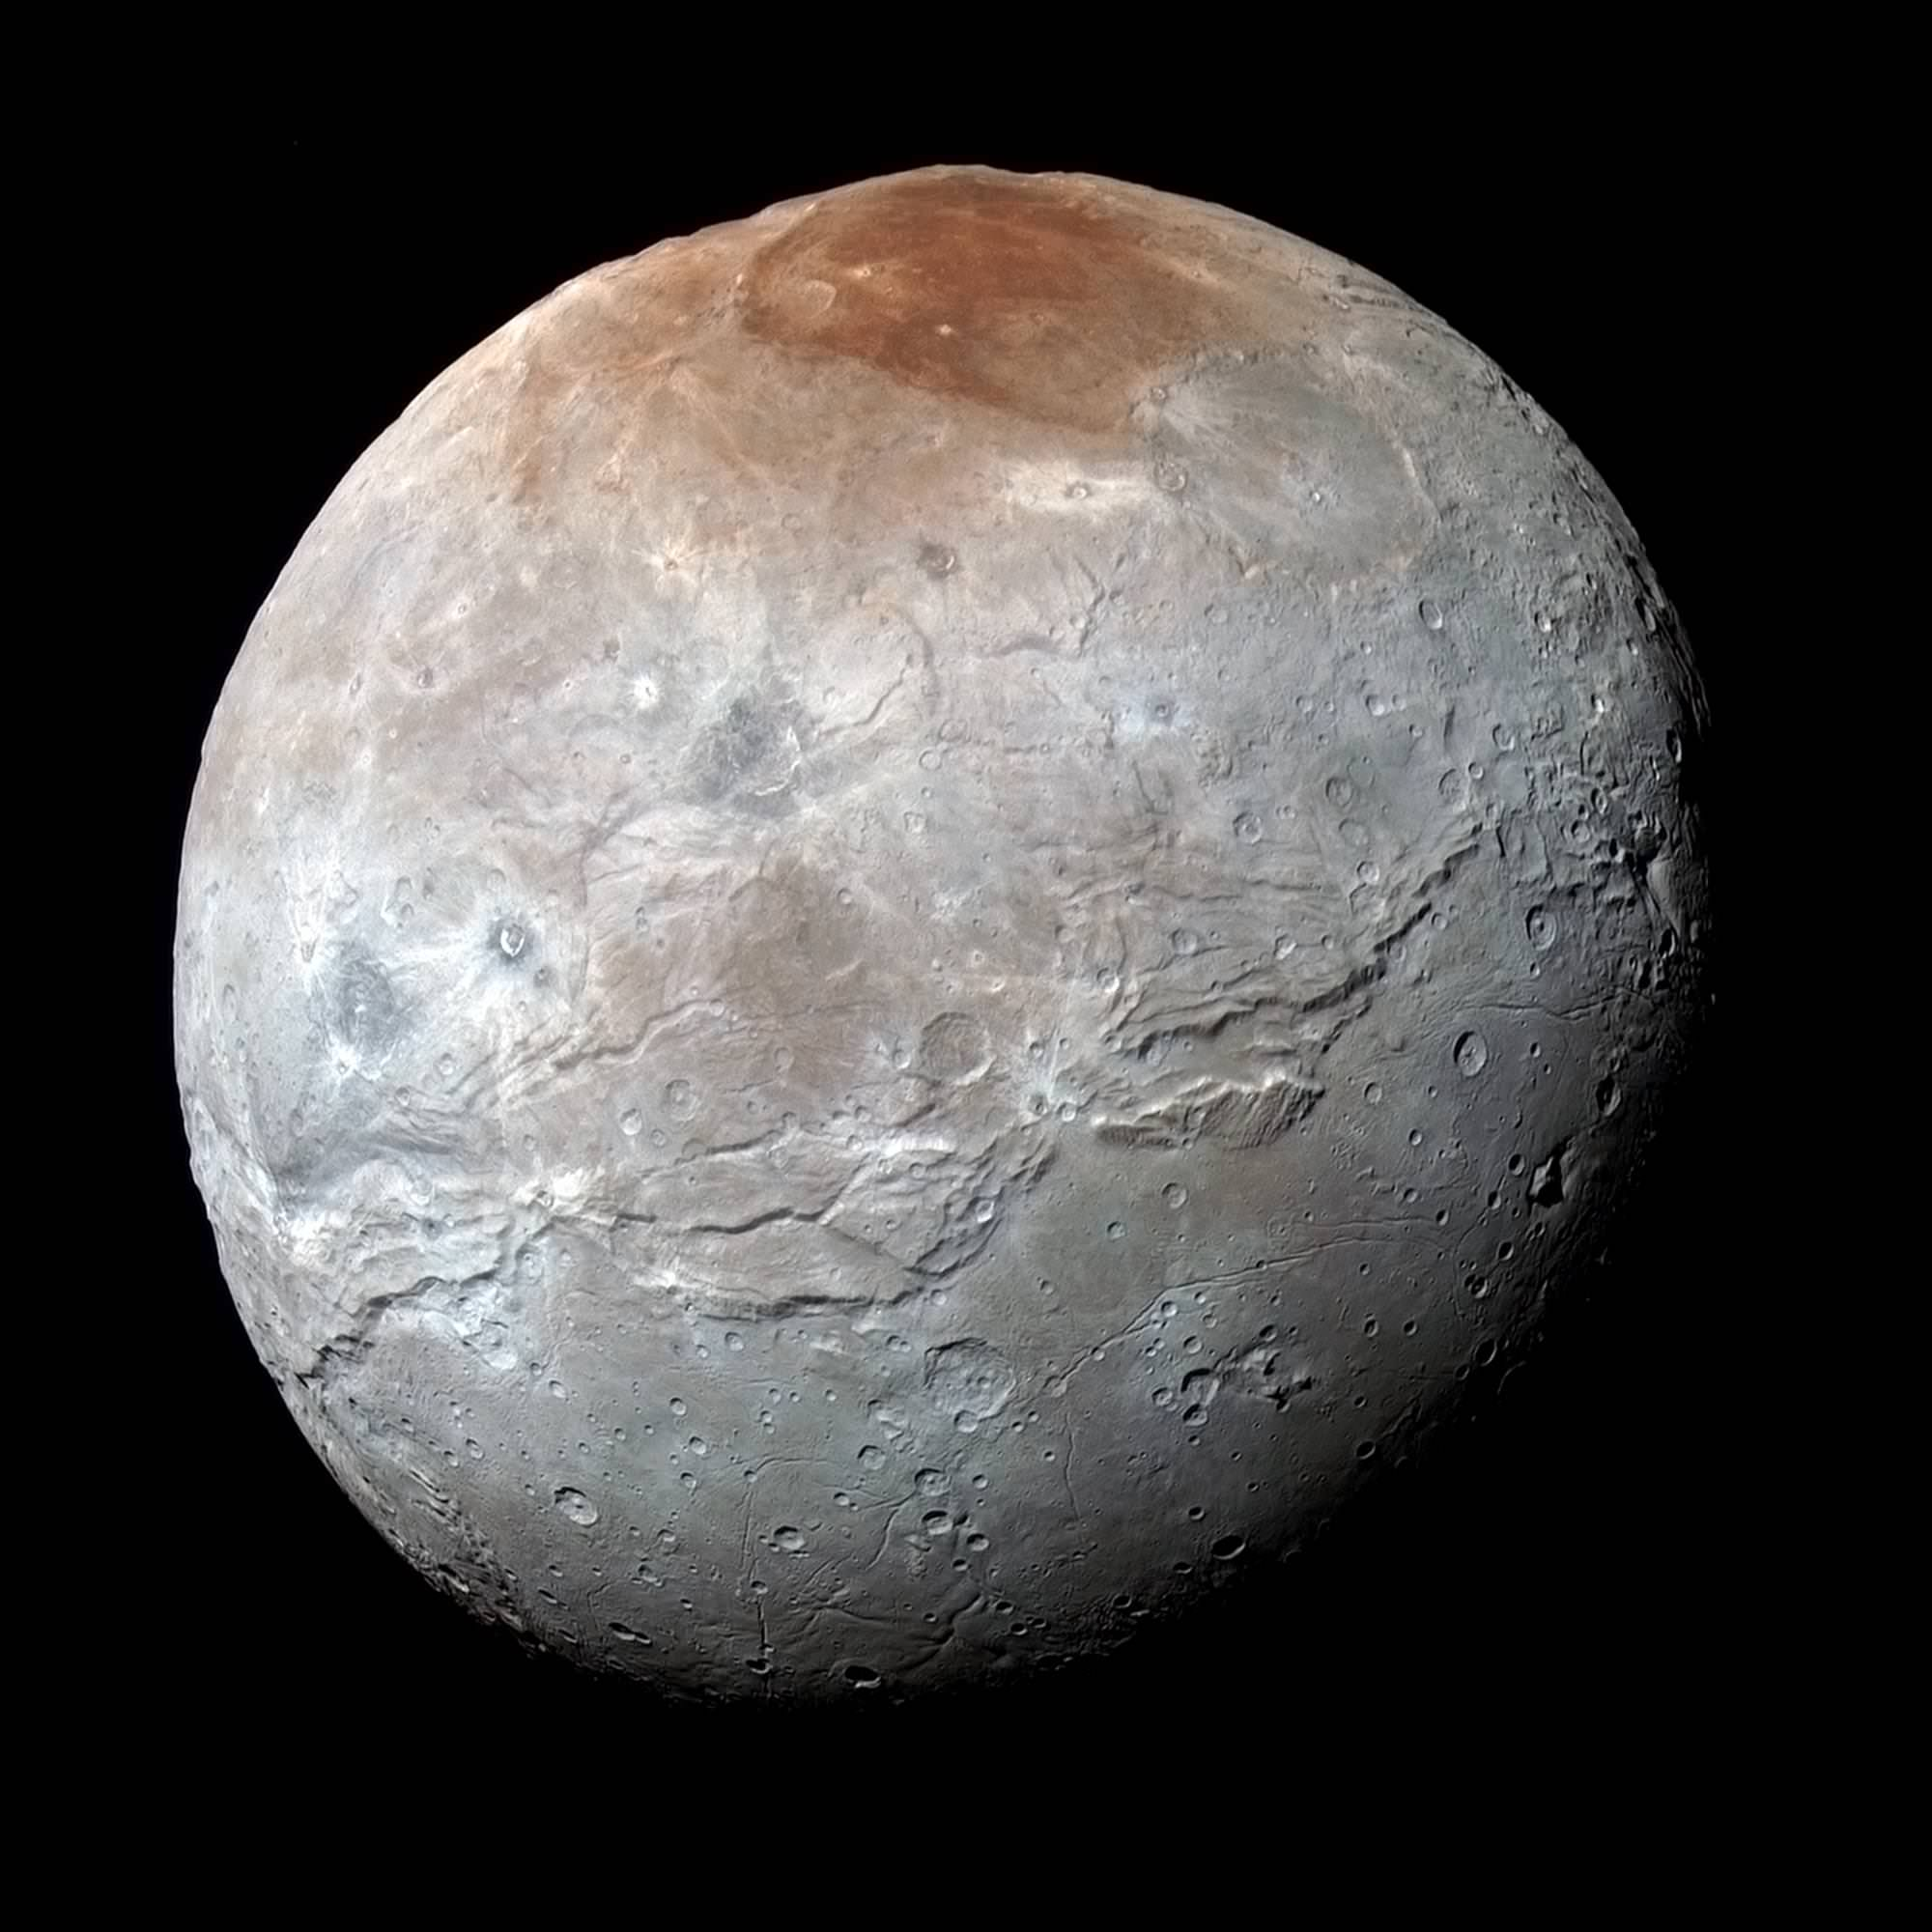 Charon in Enhanced Color. NASA's New Horizons captured this high-resolution enhanced color view of Charon just before closest approach on July 14, 2015. The image combines blue, red and infrared images taken by the spacecraft's Ralph/Multispectral Visual Imaging Camera (MVIC); the colors are processed to best highlight the variation of surface properties across Charon. Charon's color palette is not as diverse as Pluto's; most striking is the reddish north (top) polar region, informally named Mordor Macula. Charon is 754 miles (1,214 kilometers) across; this image resolves details as small as 1.8 miles (2.9 kilometers).  Credits: NASA/JHUAPL/SwRI